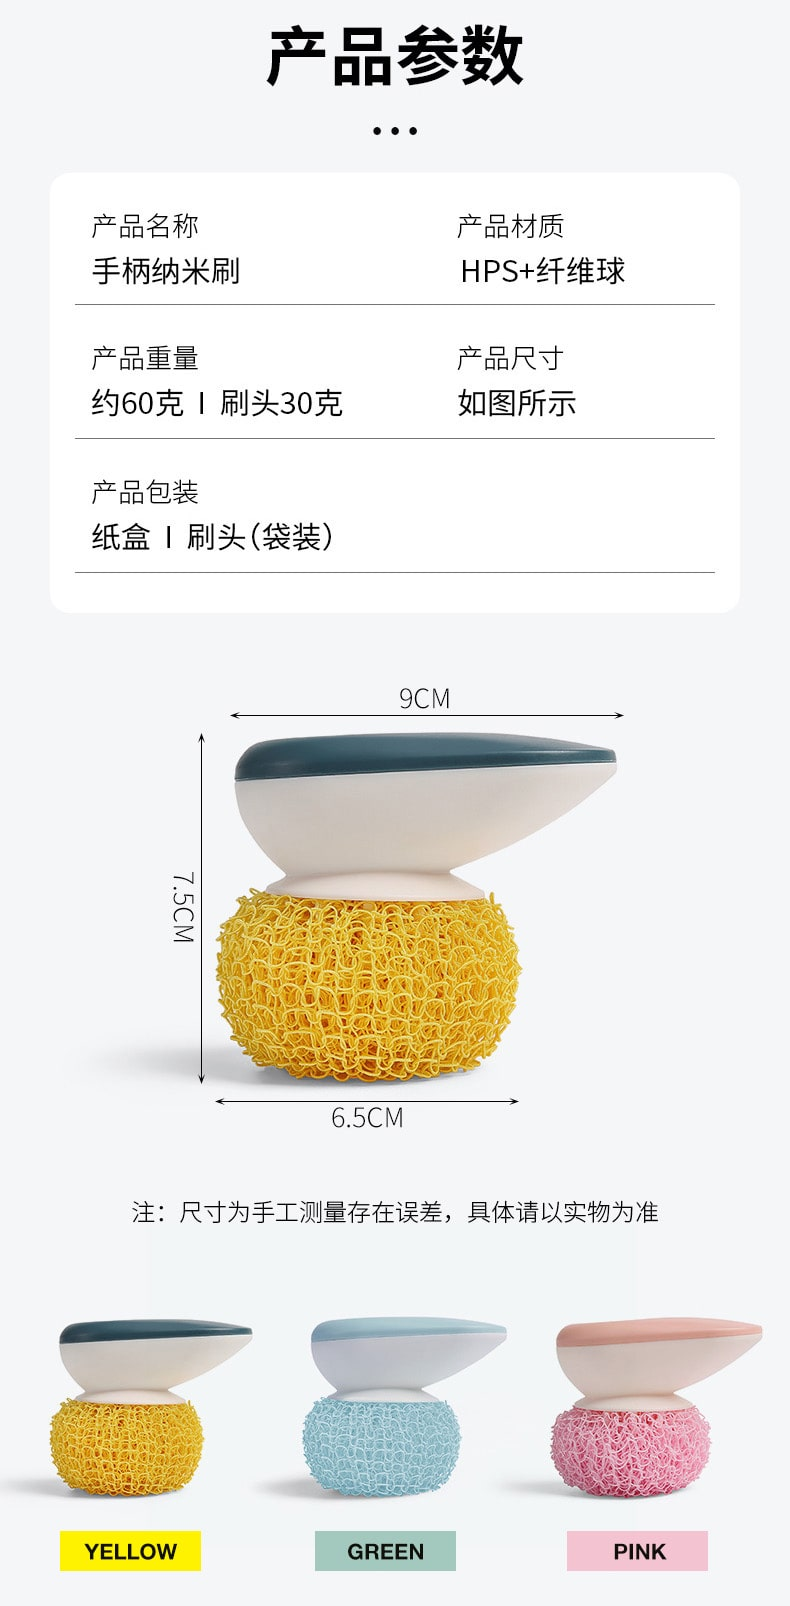 Nylon Ball Kitchen Brush - Details